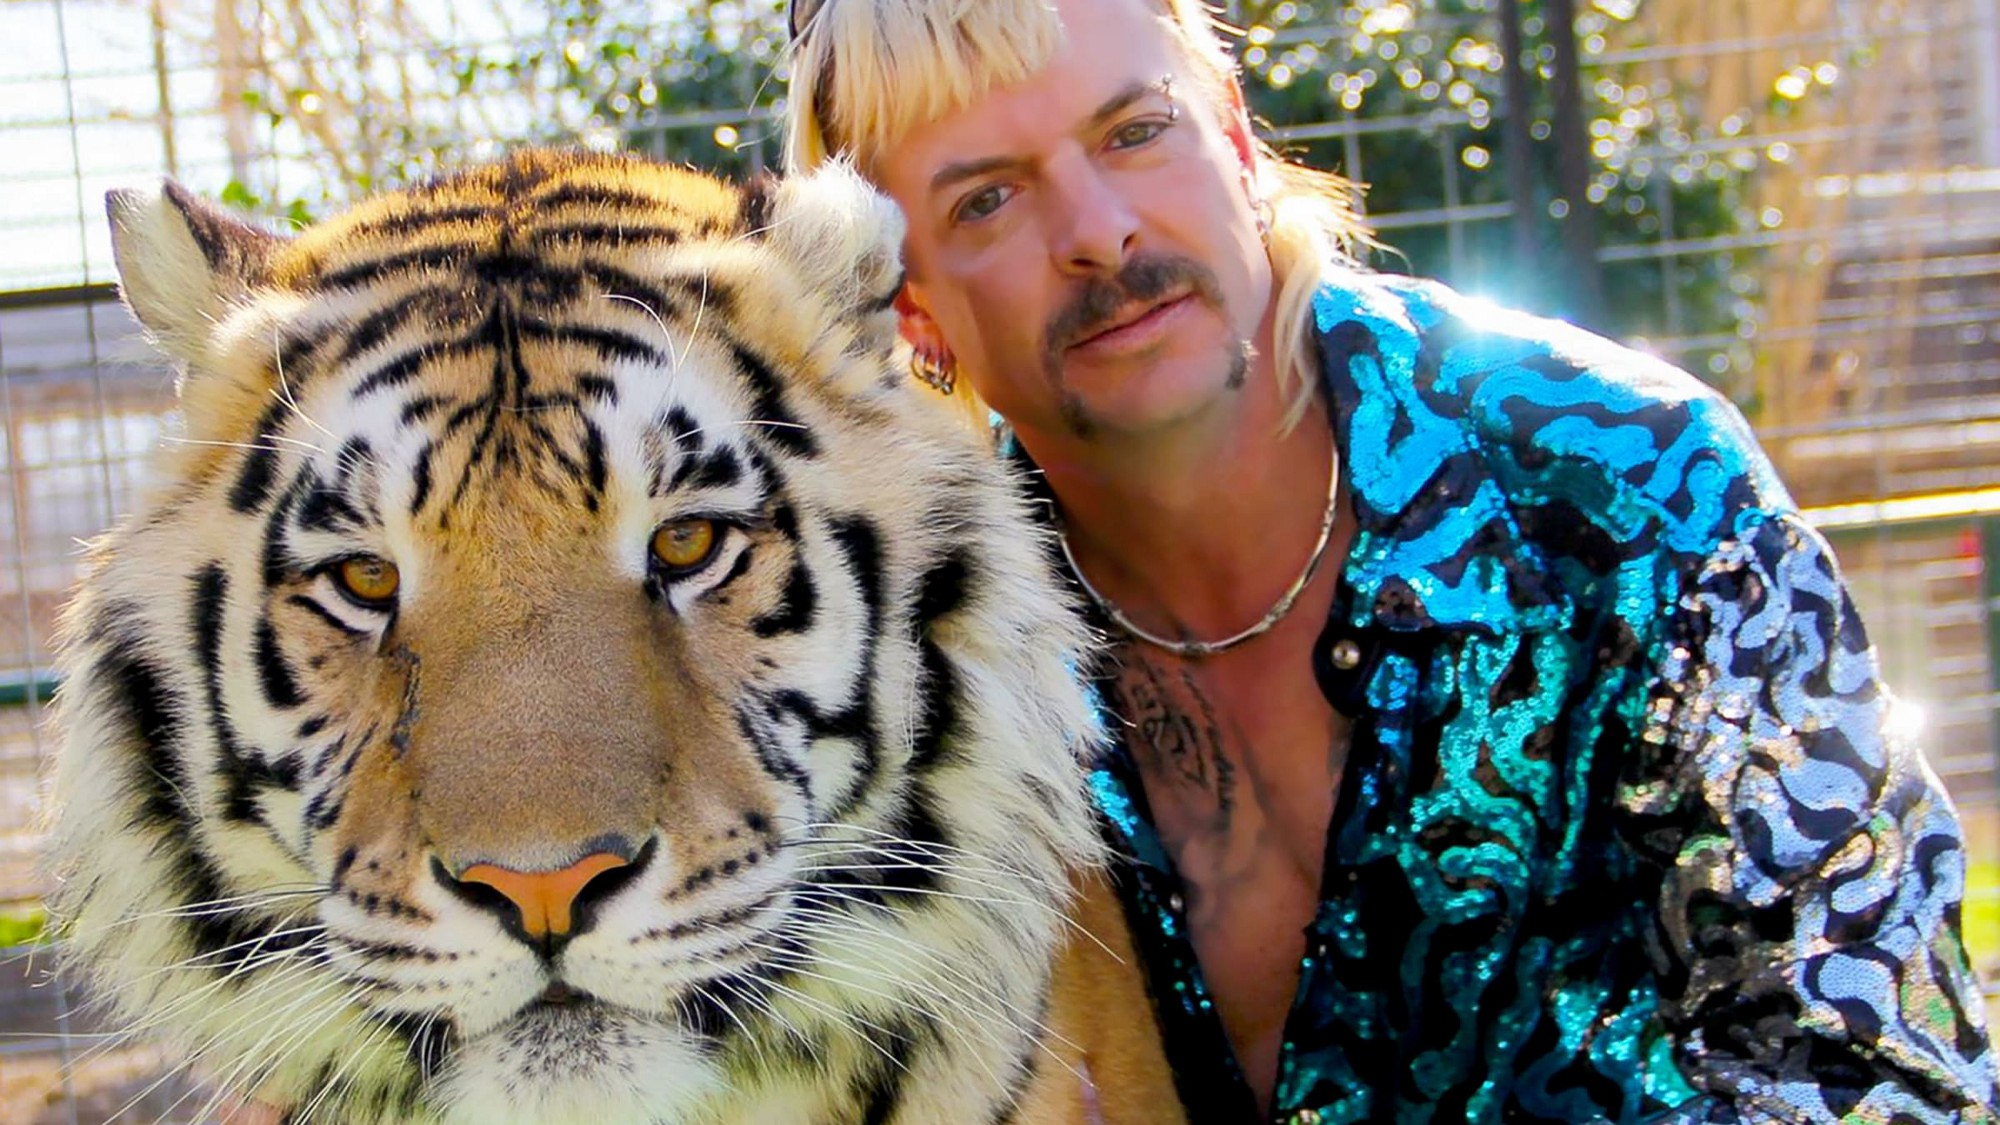 Tiger King's Joe Exotic with one of his tigers